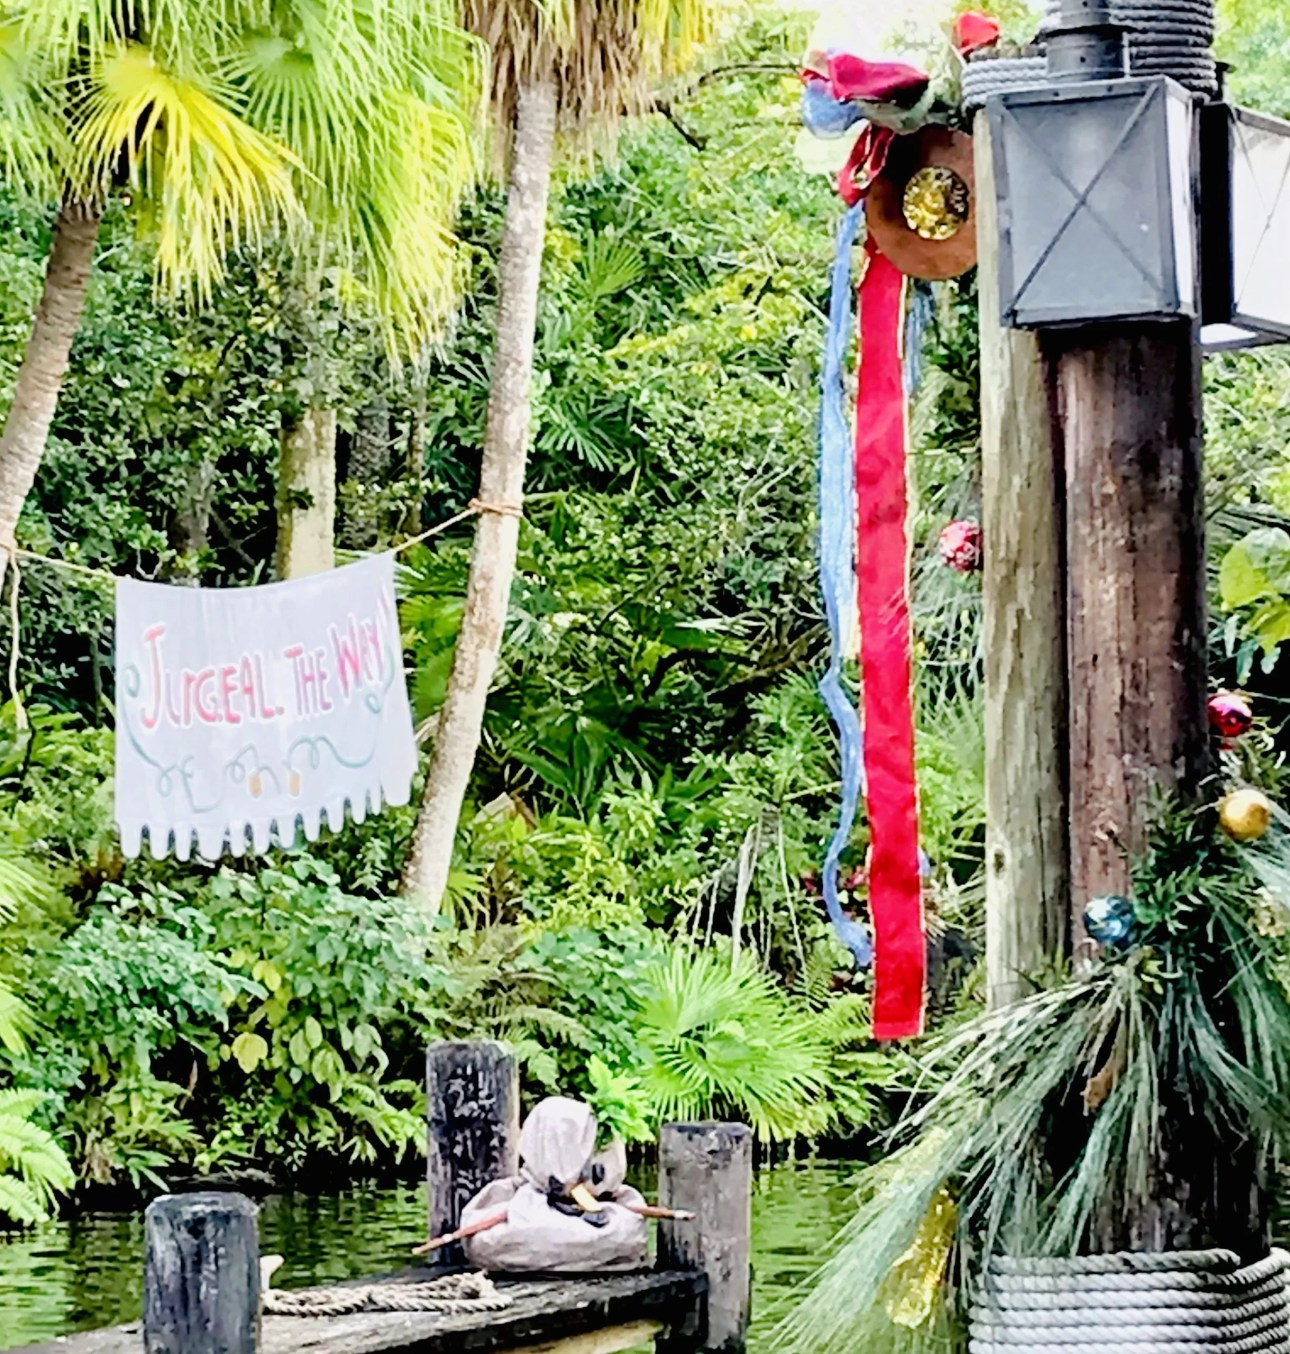 Jugeal the way on the Jingle Cruise by the docks